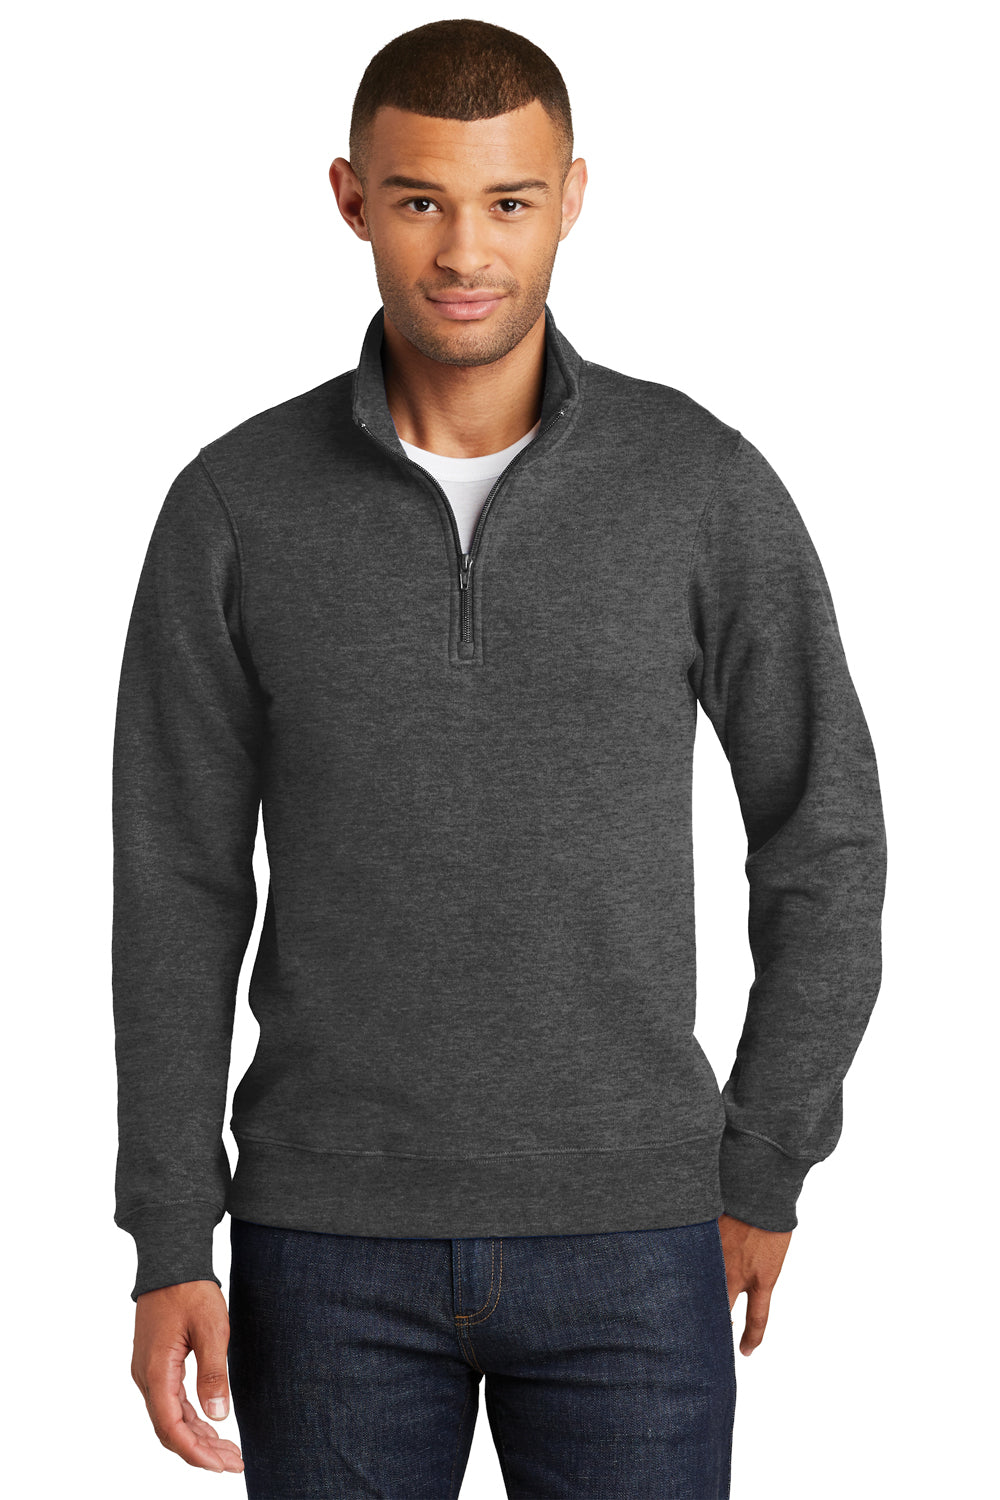 Port & Company PC850Q Mens Fan Favorite Fleece 1/4 Zip Sweatshirt Heather Dark Grey Front